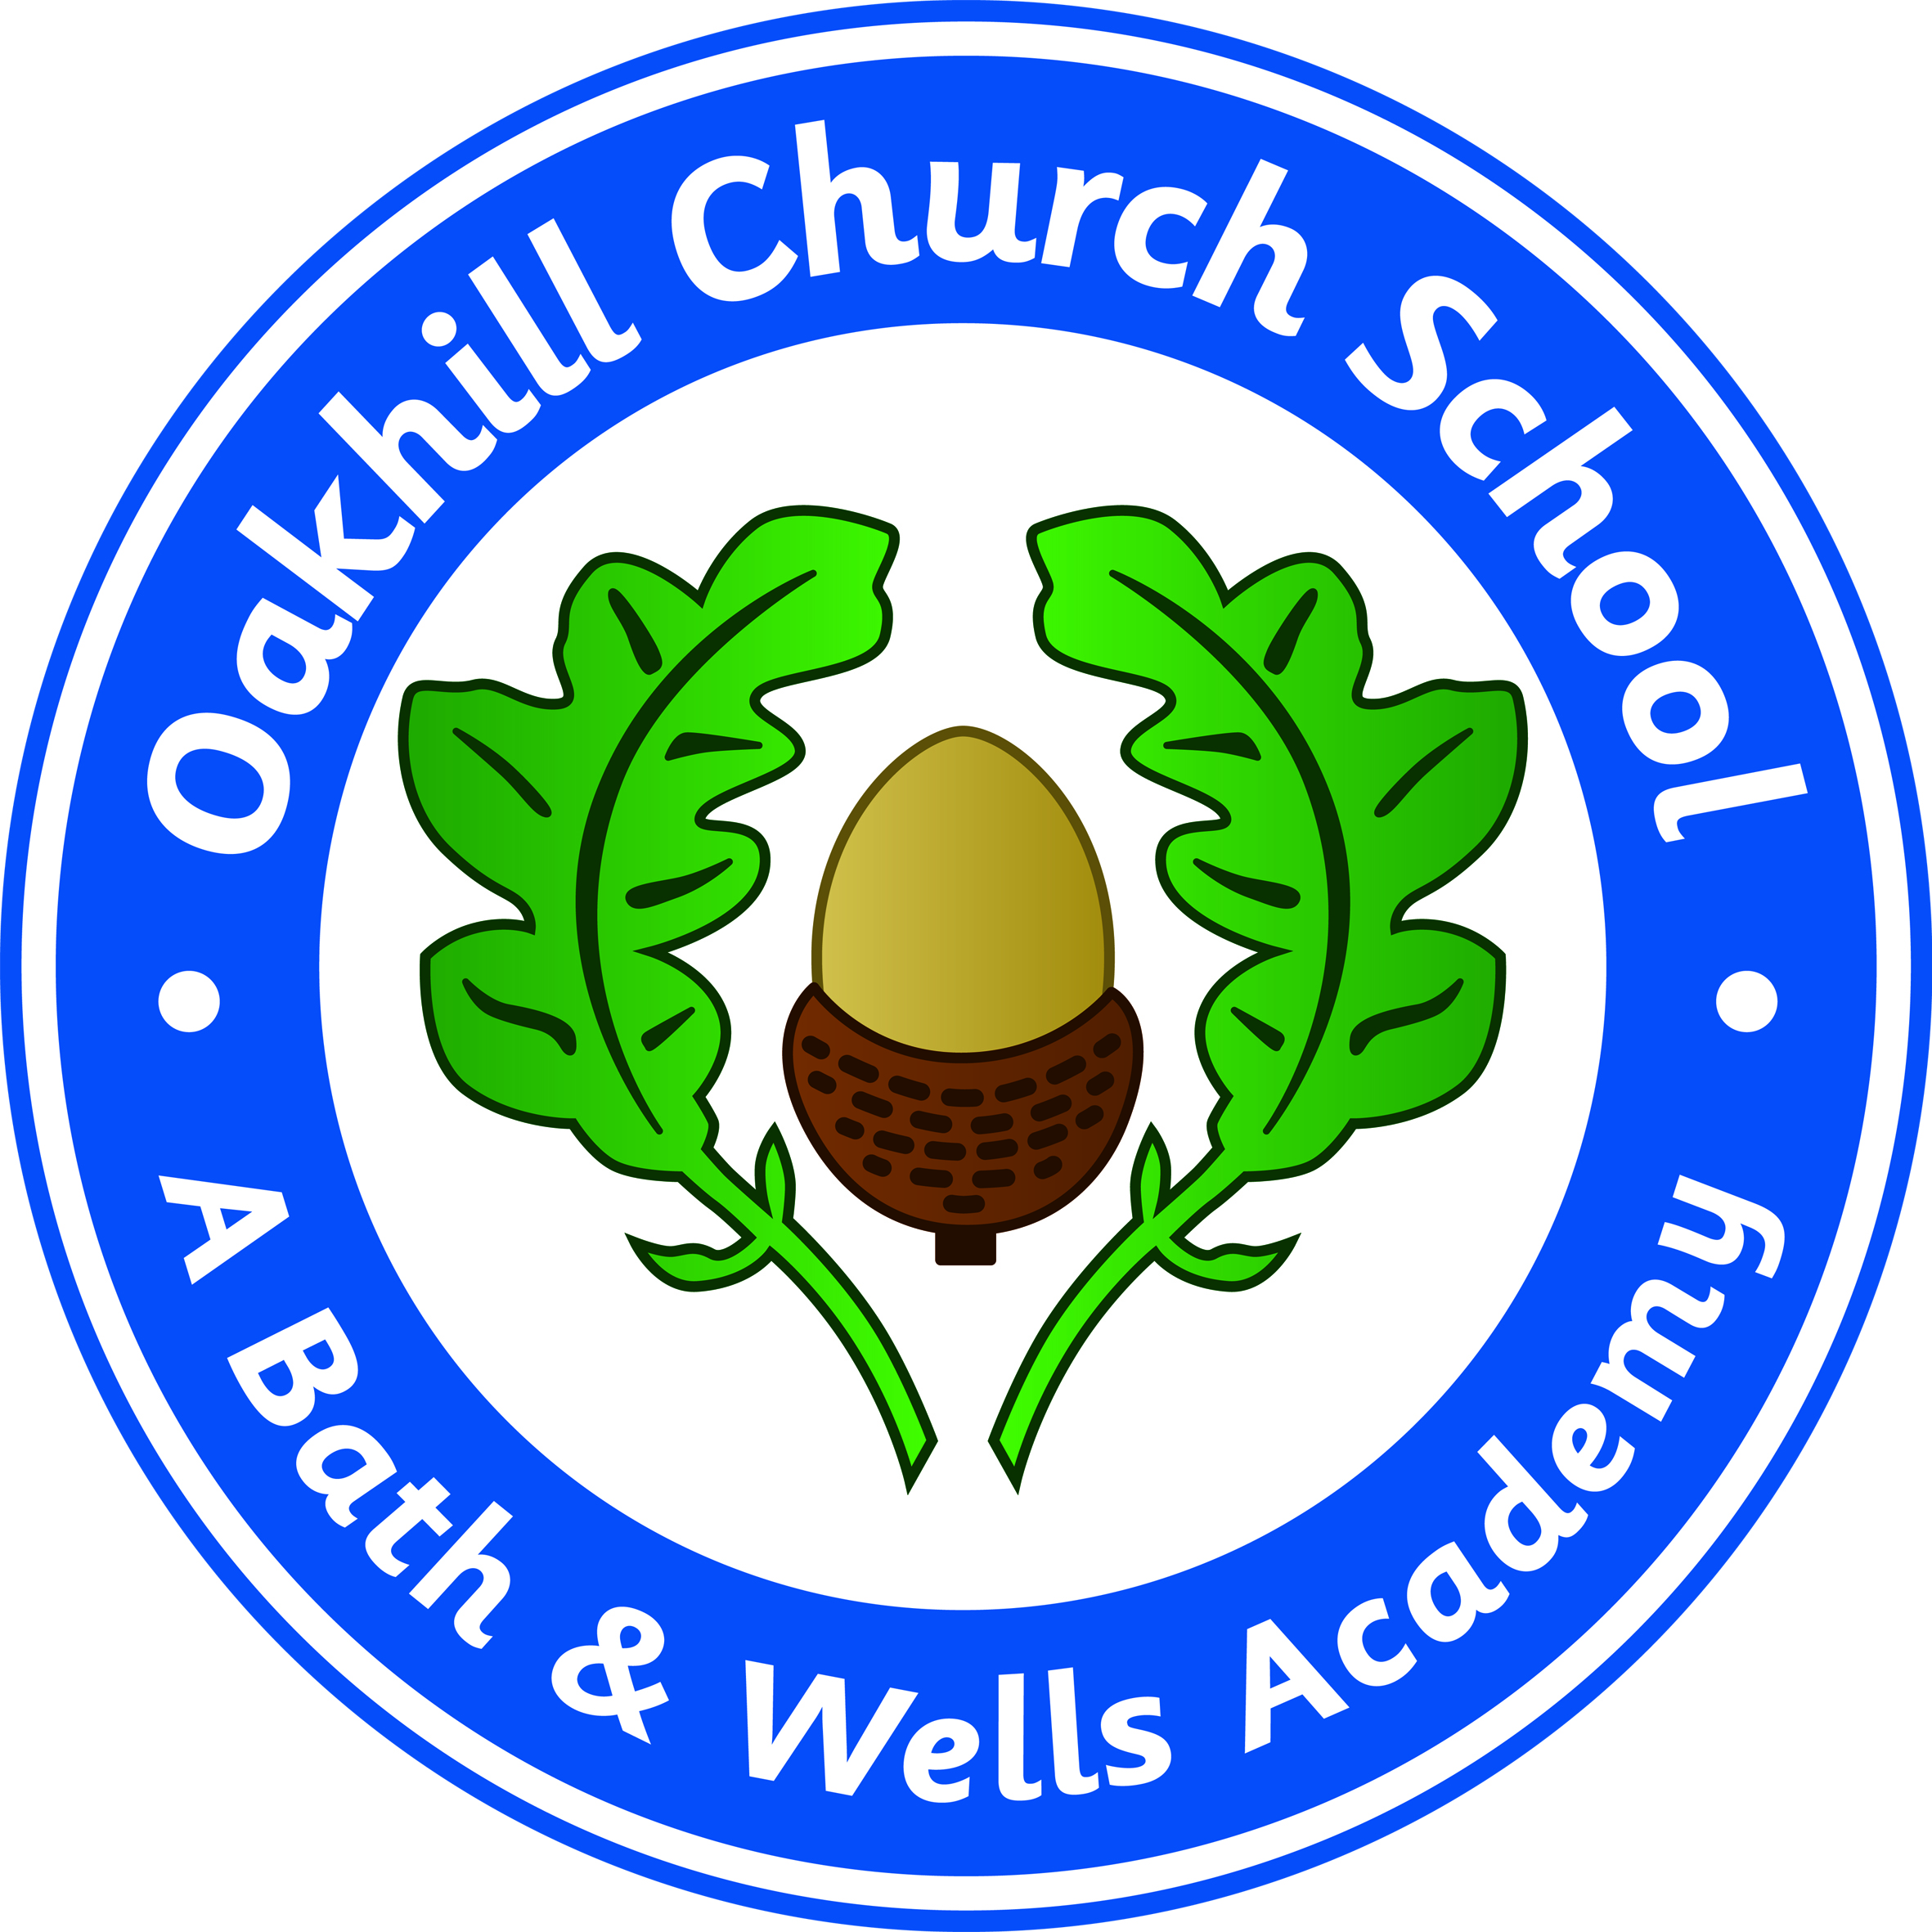 Oakhill Church School